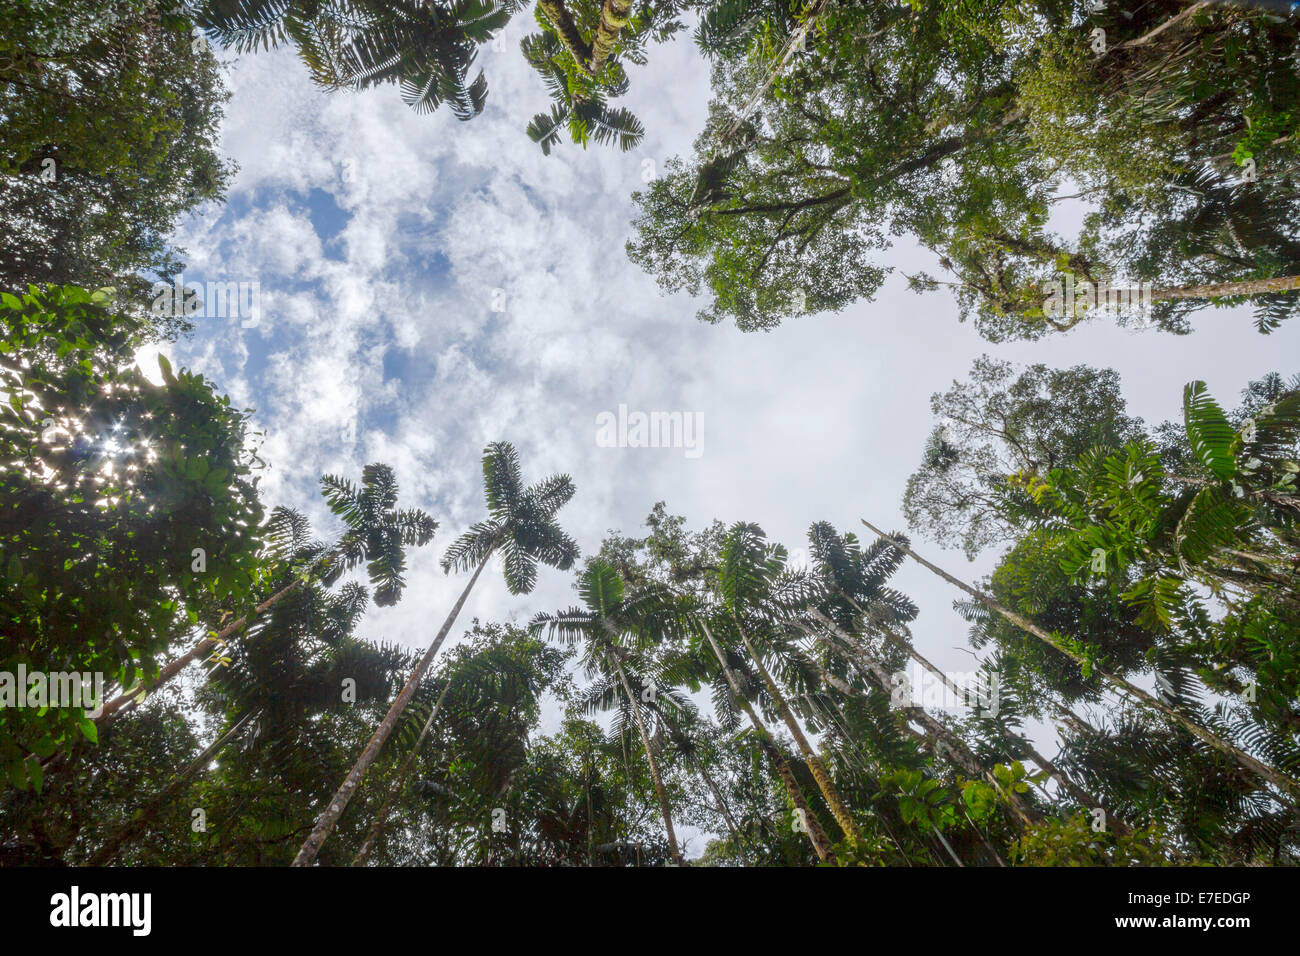 Looking Up To The Sky Above A Tree Fall Gap In Tropical